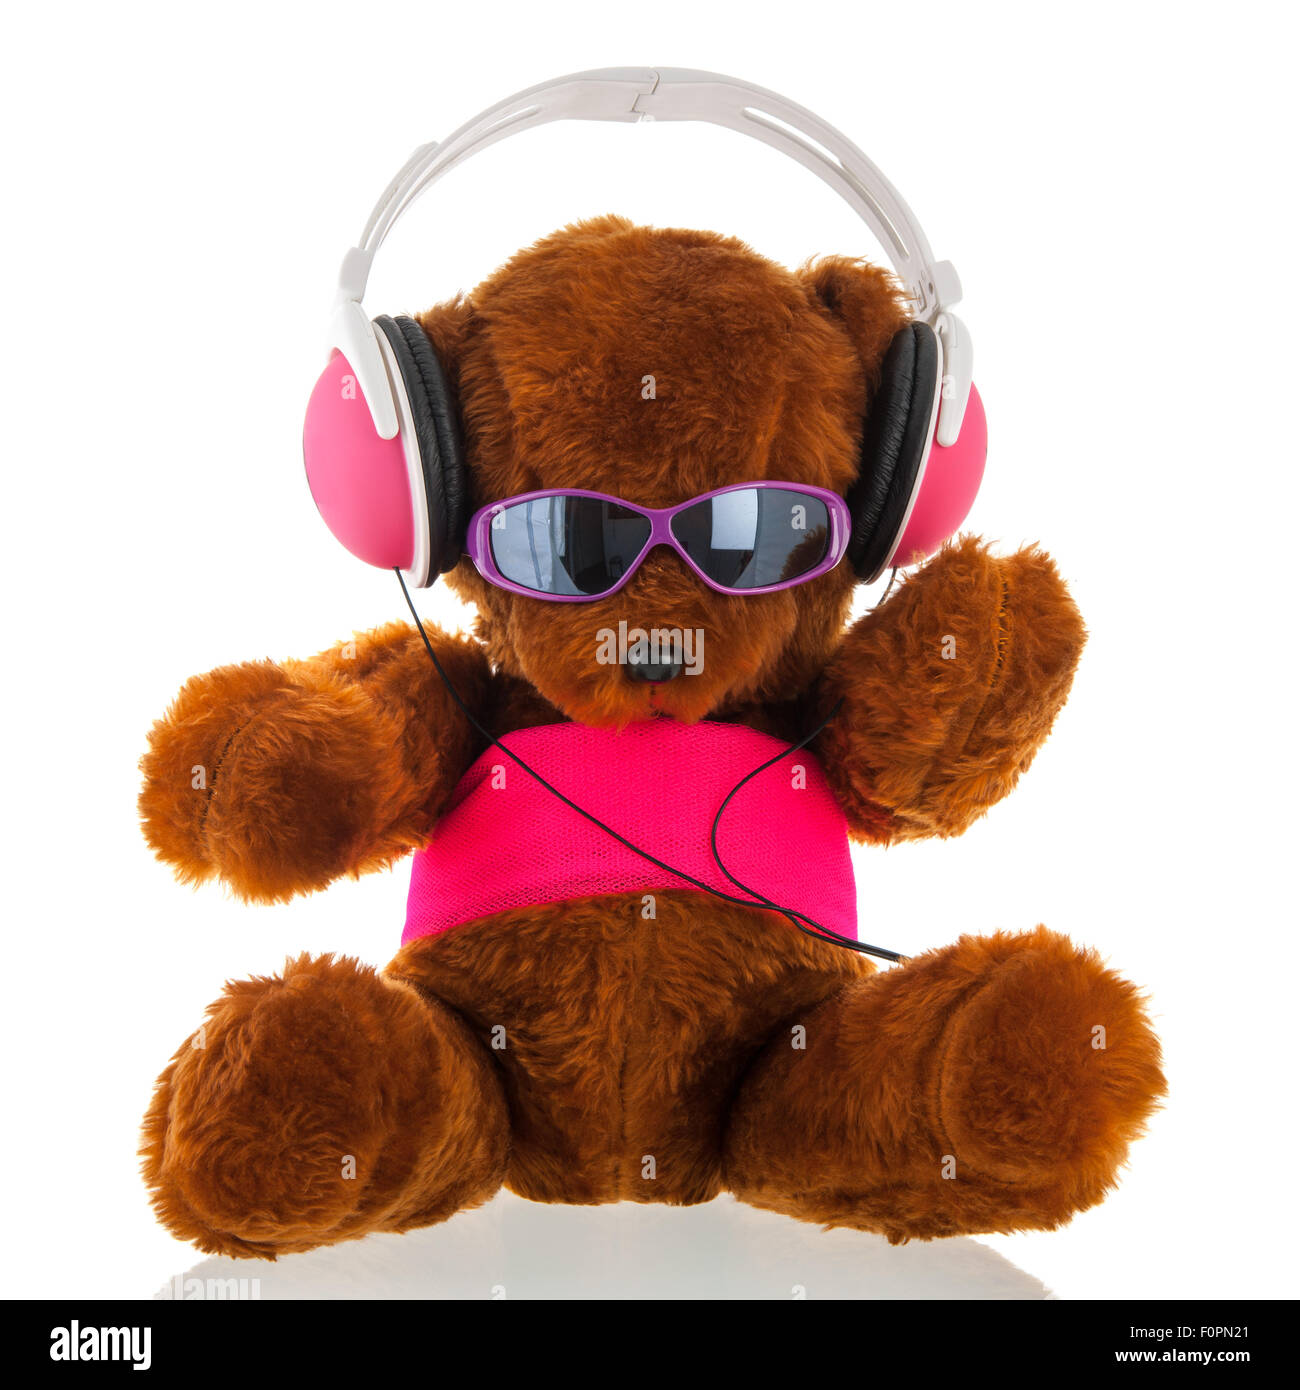 3bd8b93a335 Funny stuffed bear with head phone isolated over white background - Stock  Image